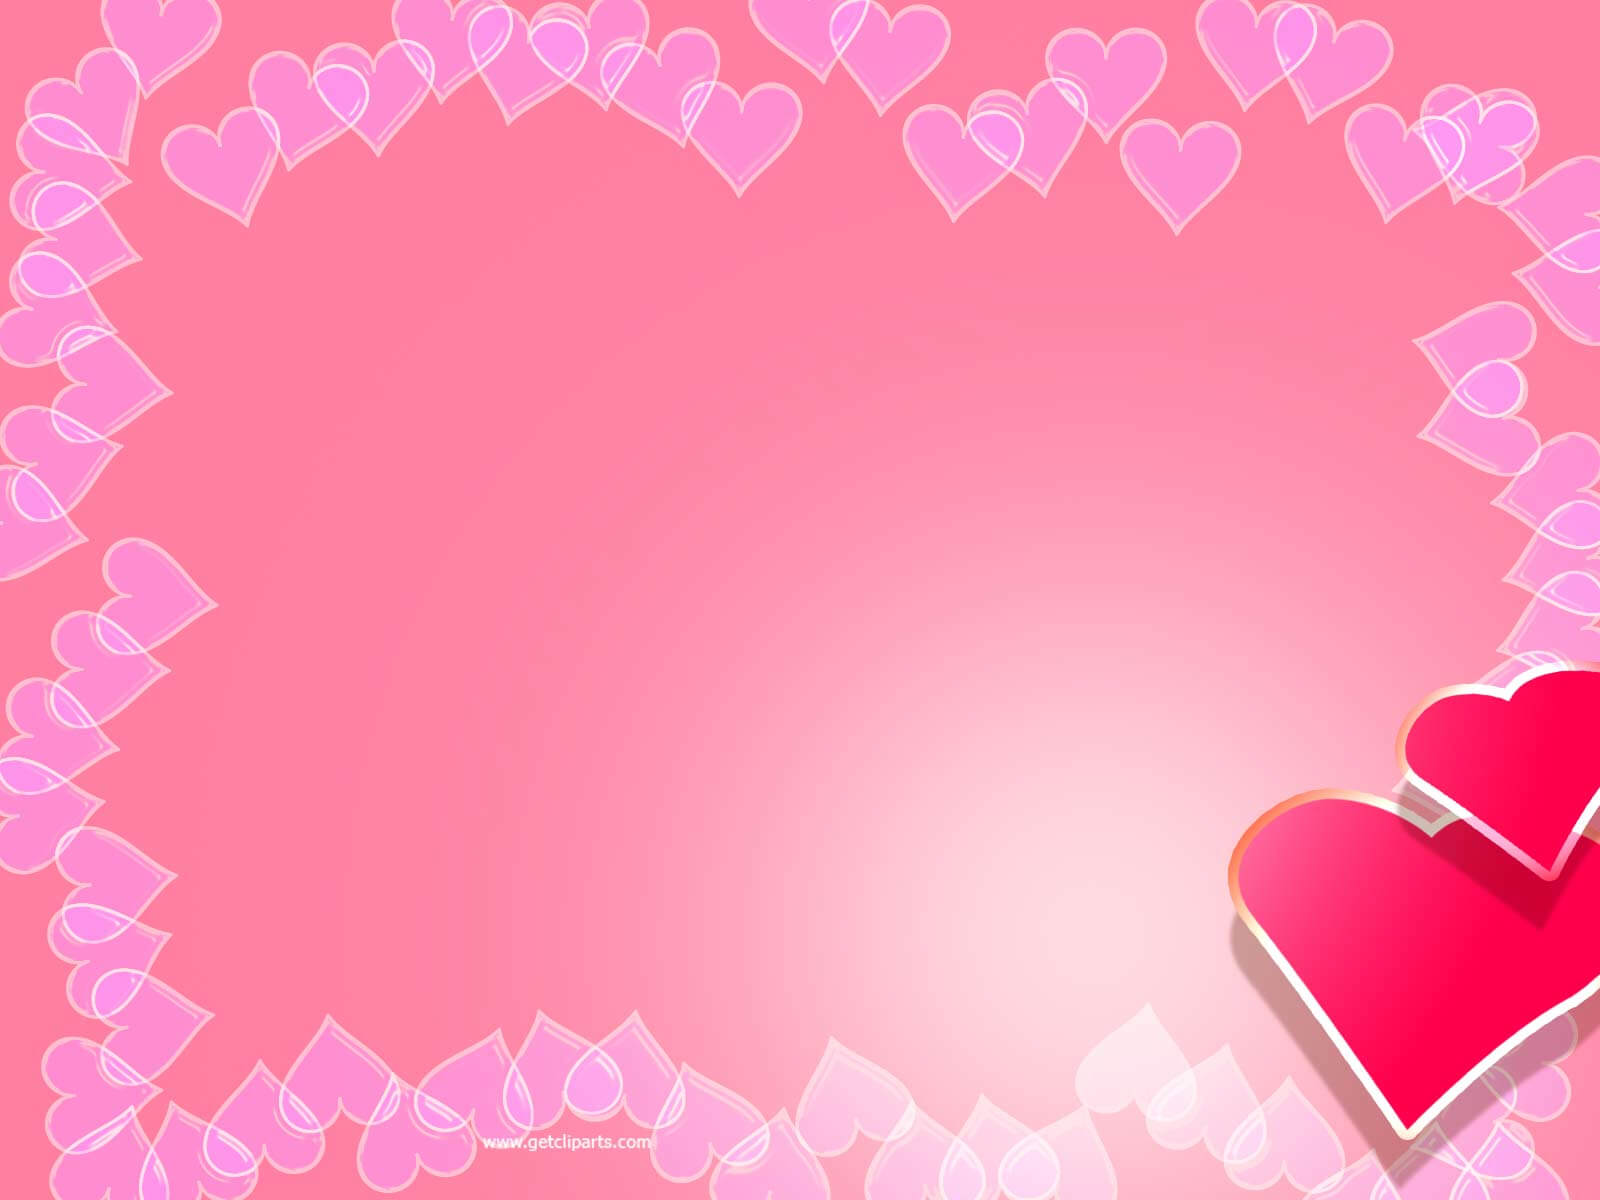 Valentine Backgrounds For Powerpoint - Border And Frame Ppt intended for Valentine Powerpoint Templates Free